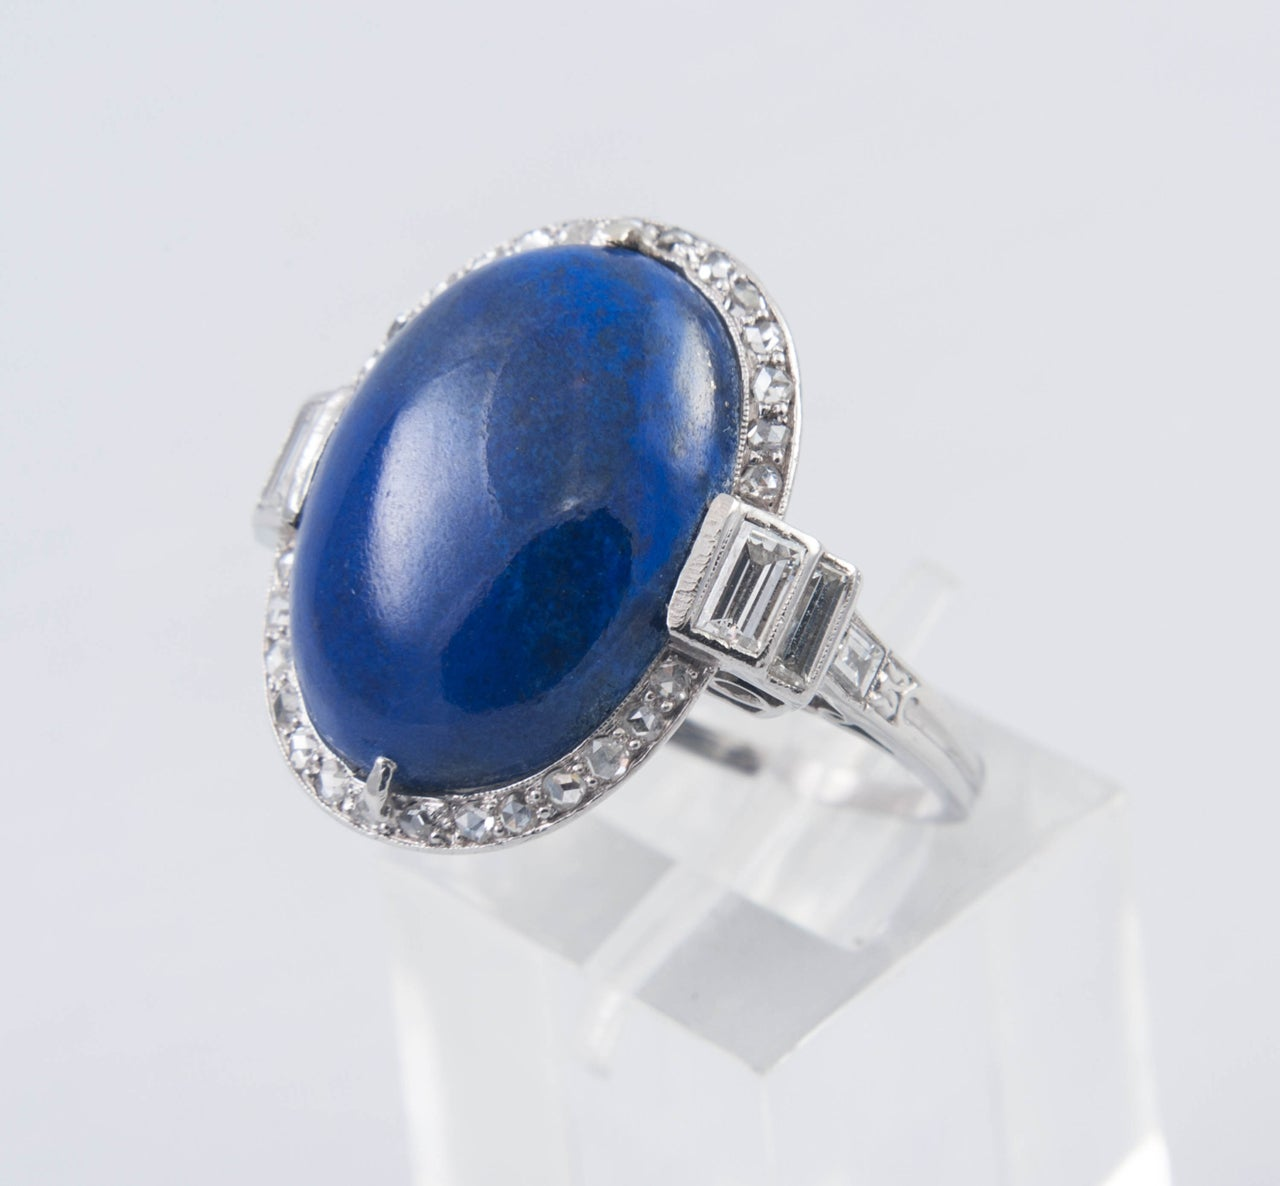 Art Deco Lapis Lazuli Diamond Ring For Sale 2